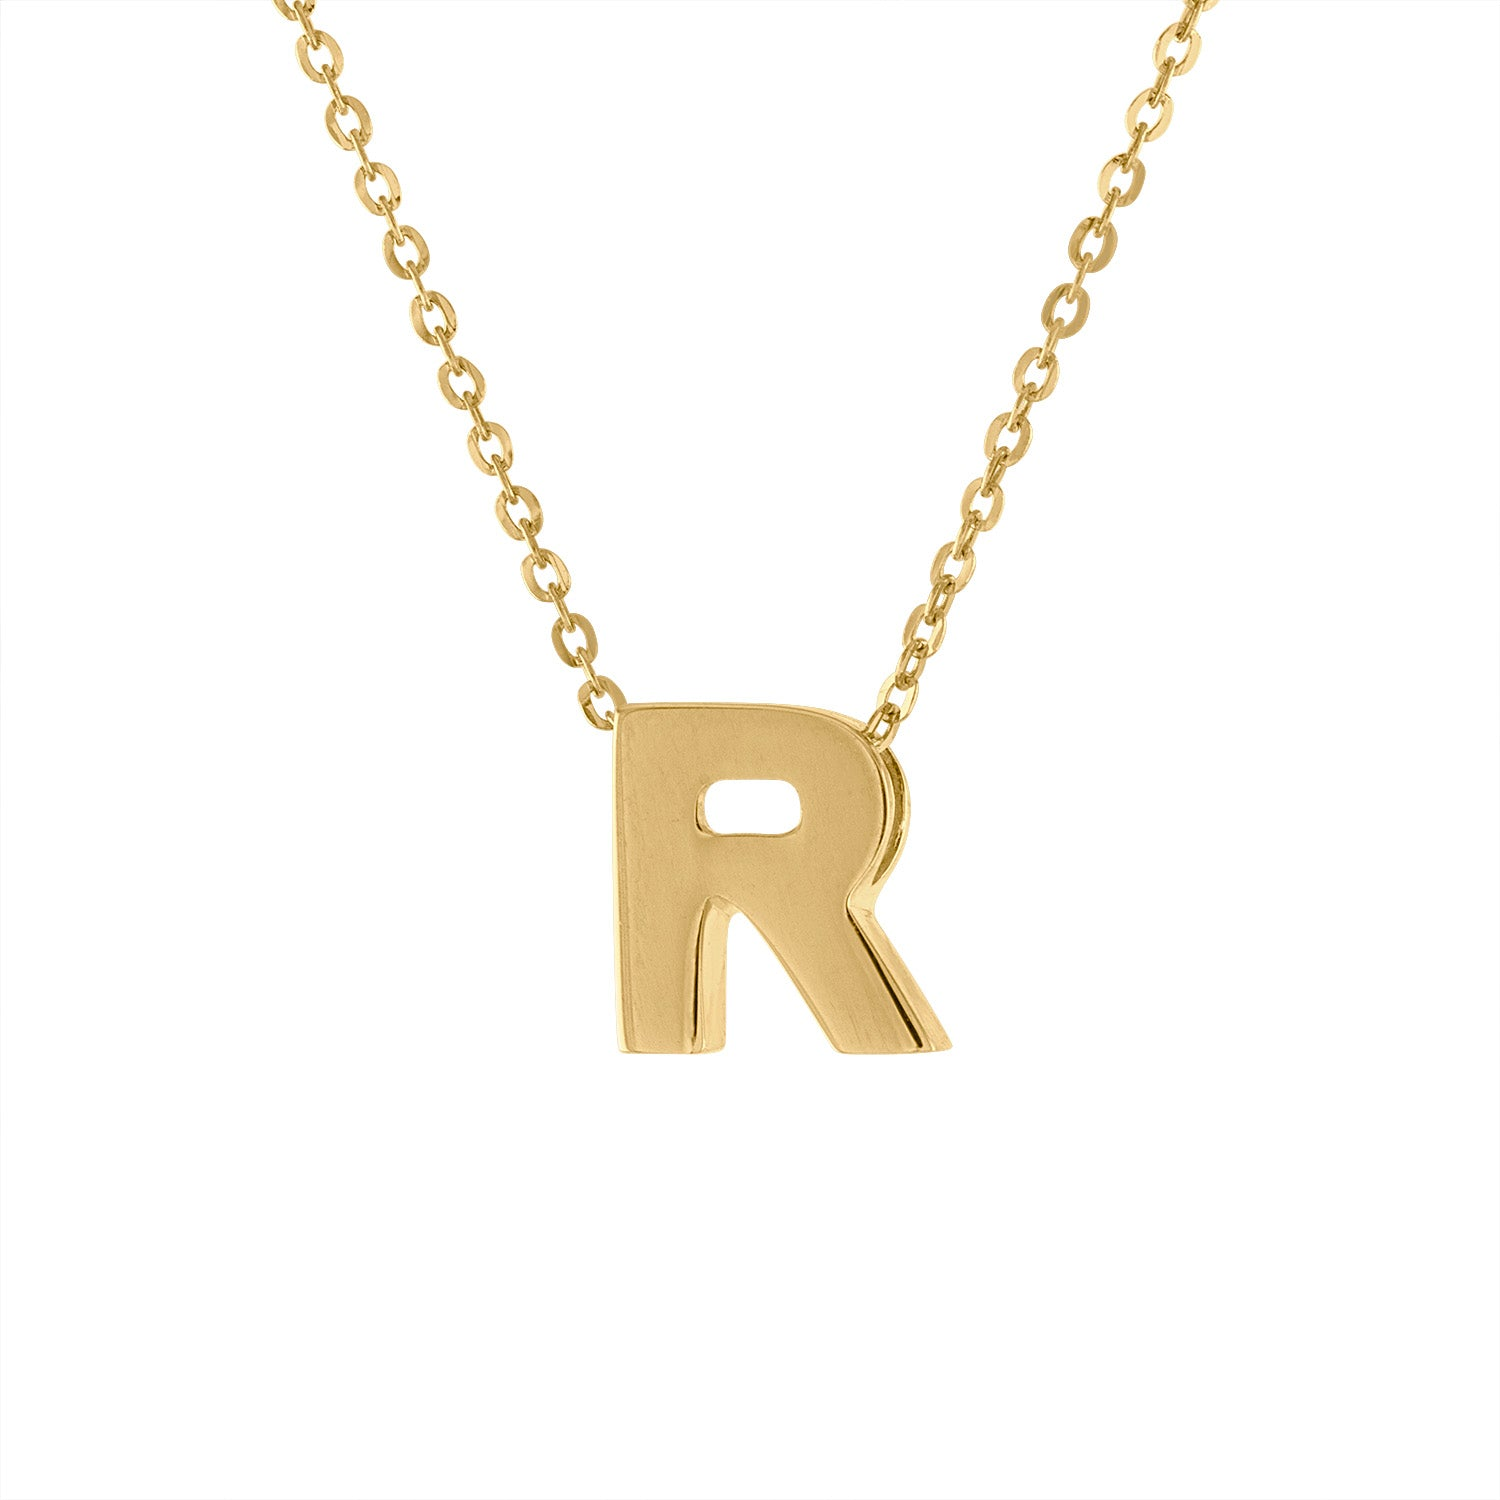 14k Yellow Gold plain initial R necklace